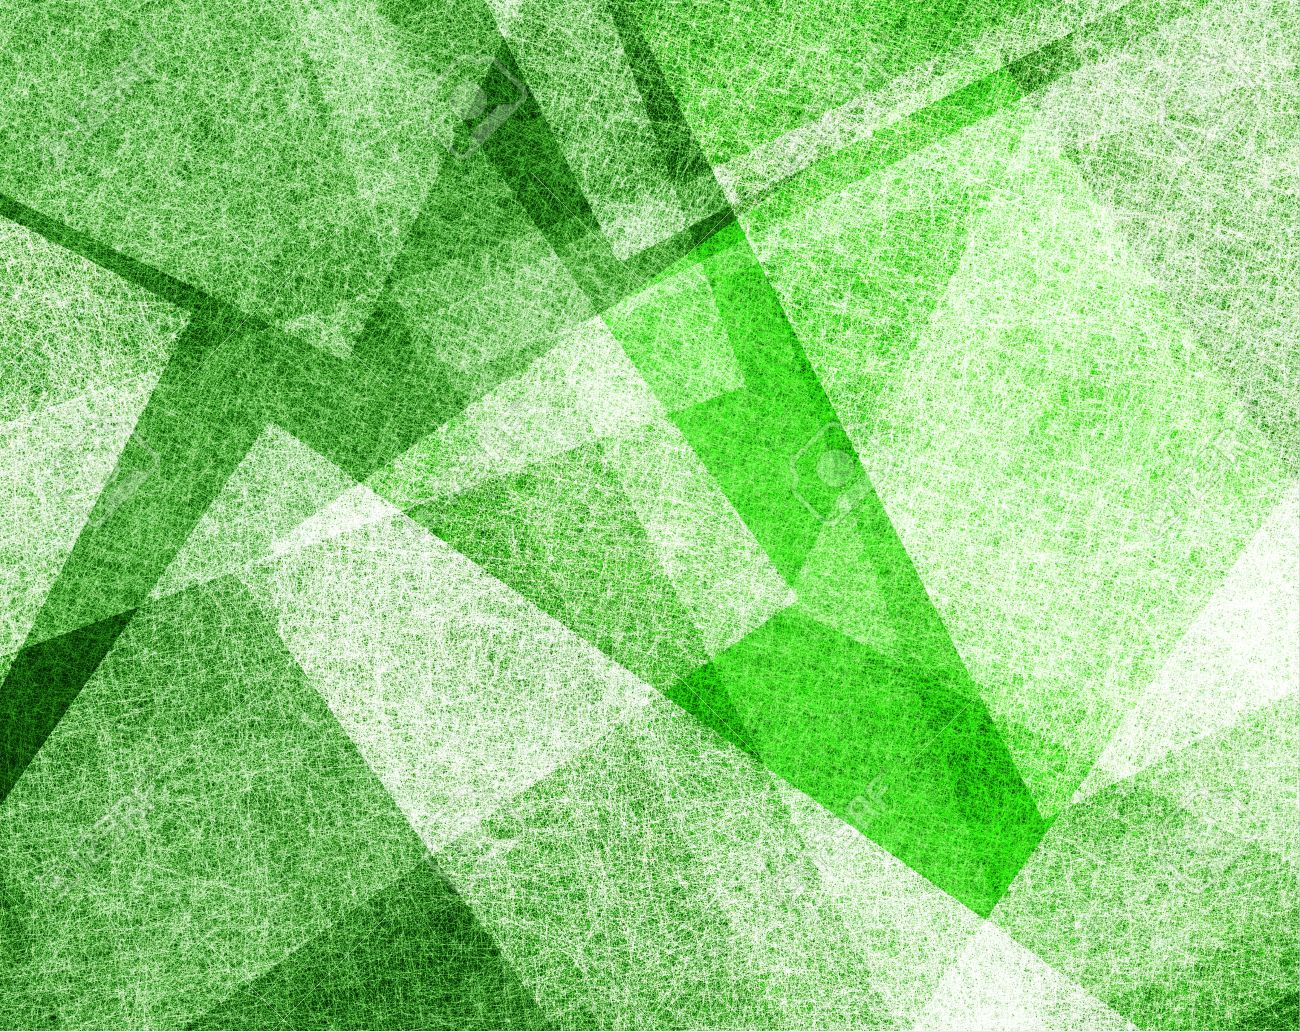 Abstract Green Background With White Parchment Paper Geometric Shapes Texture Linen Canvas Style